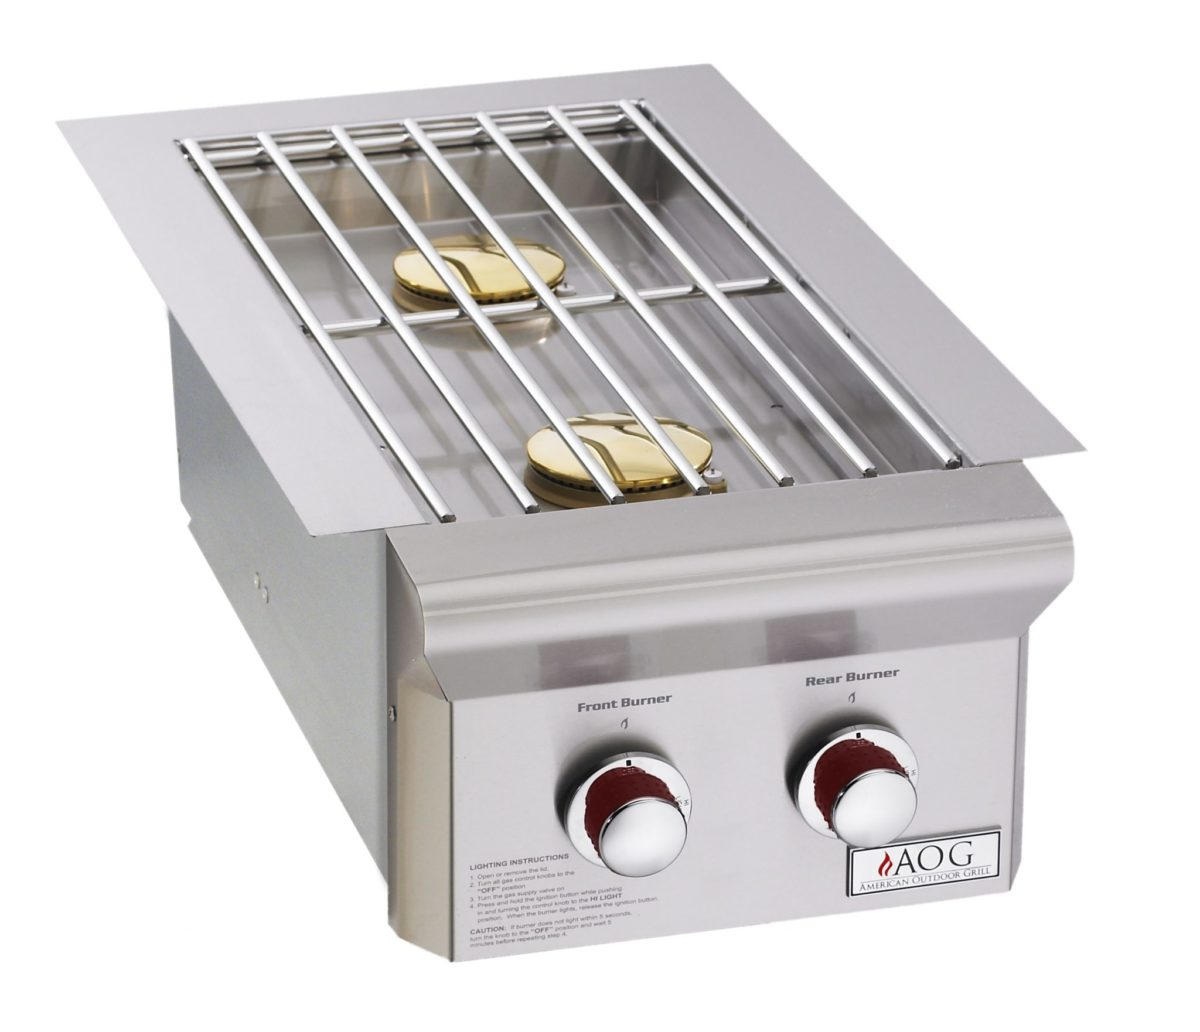 AOG 3282T Built-In Double Side Burner T Series